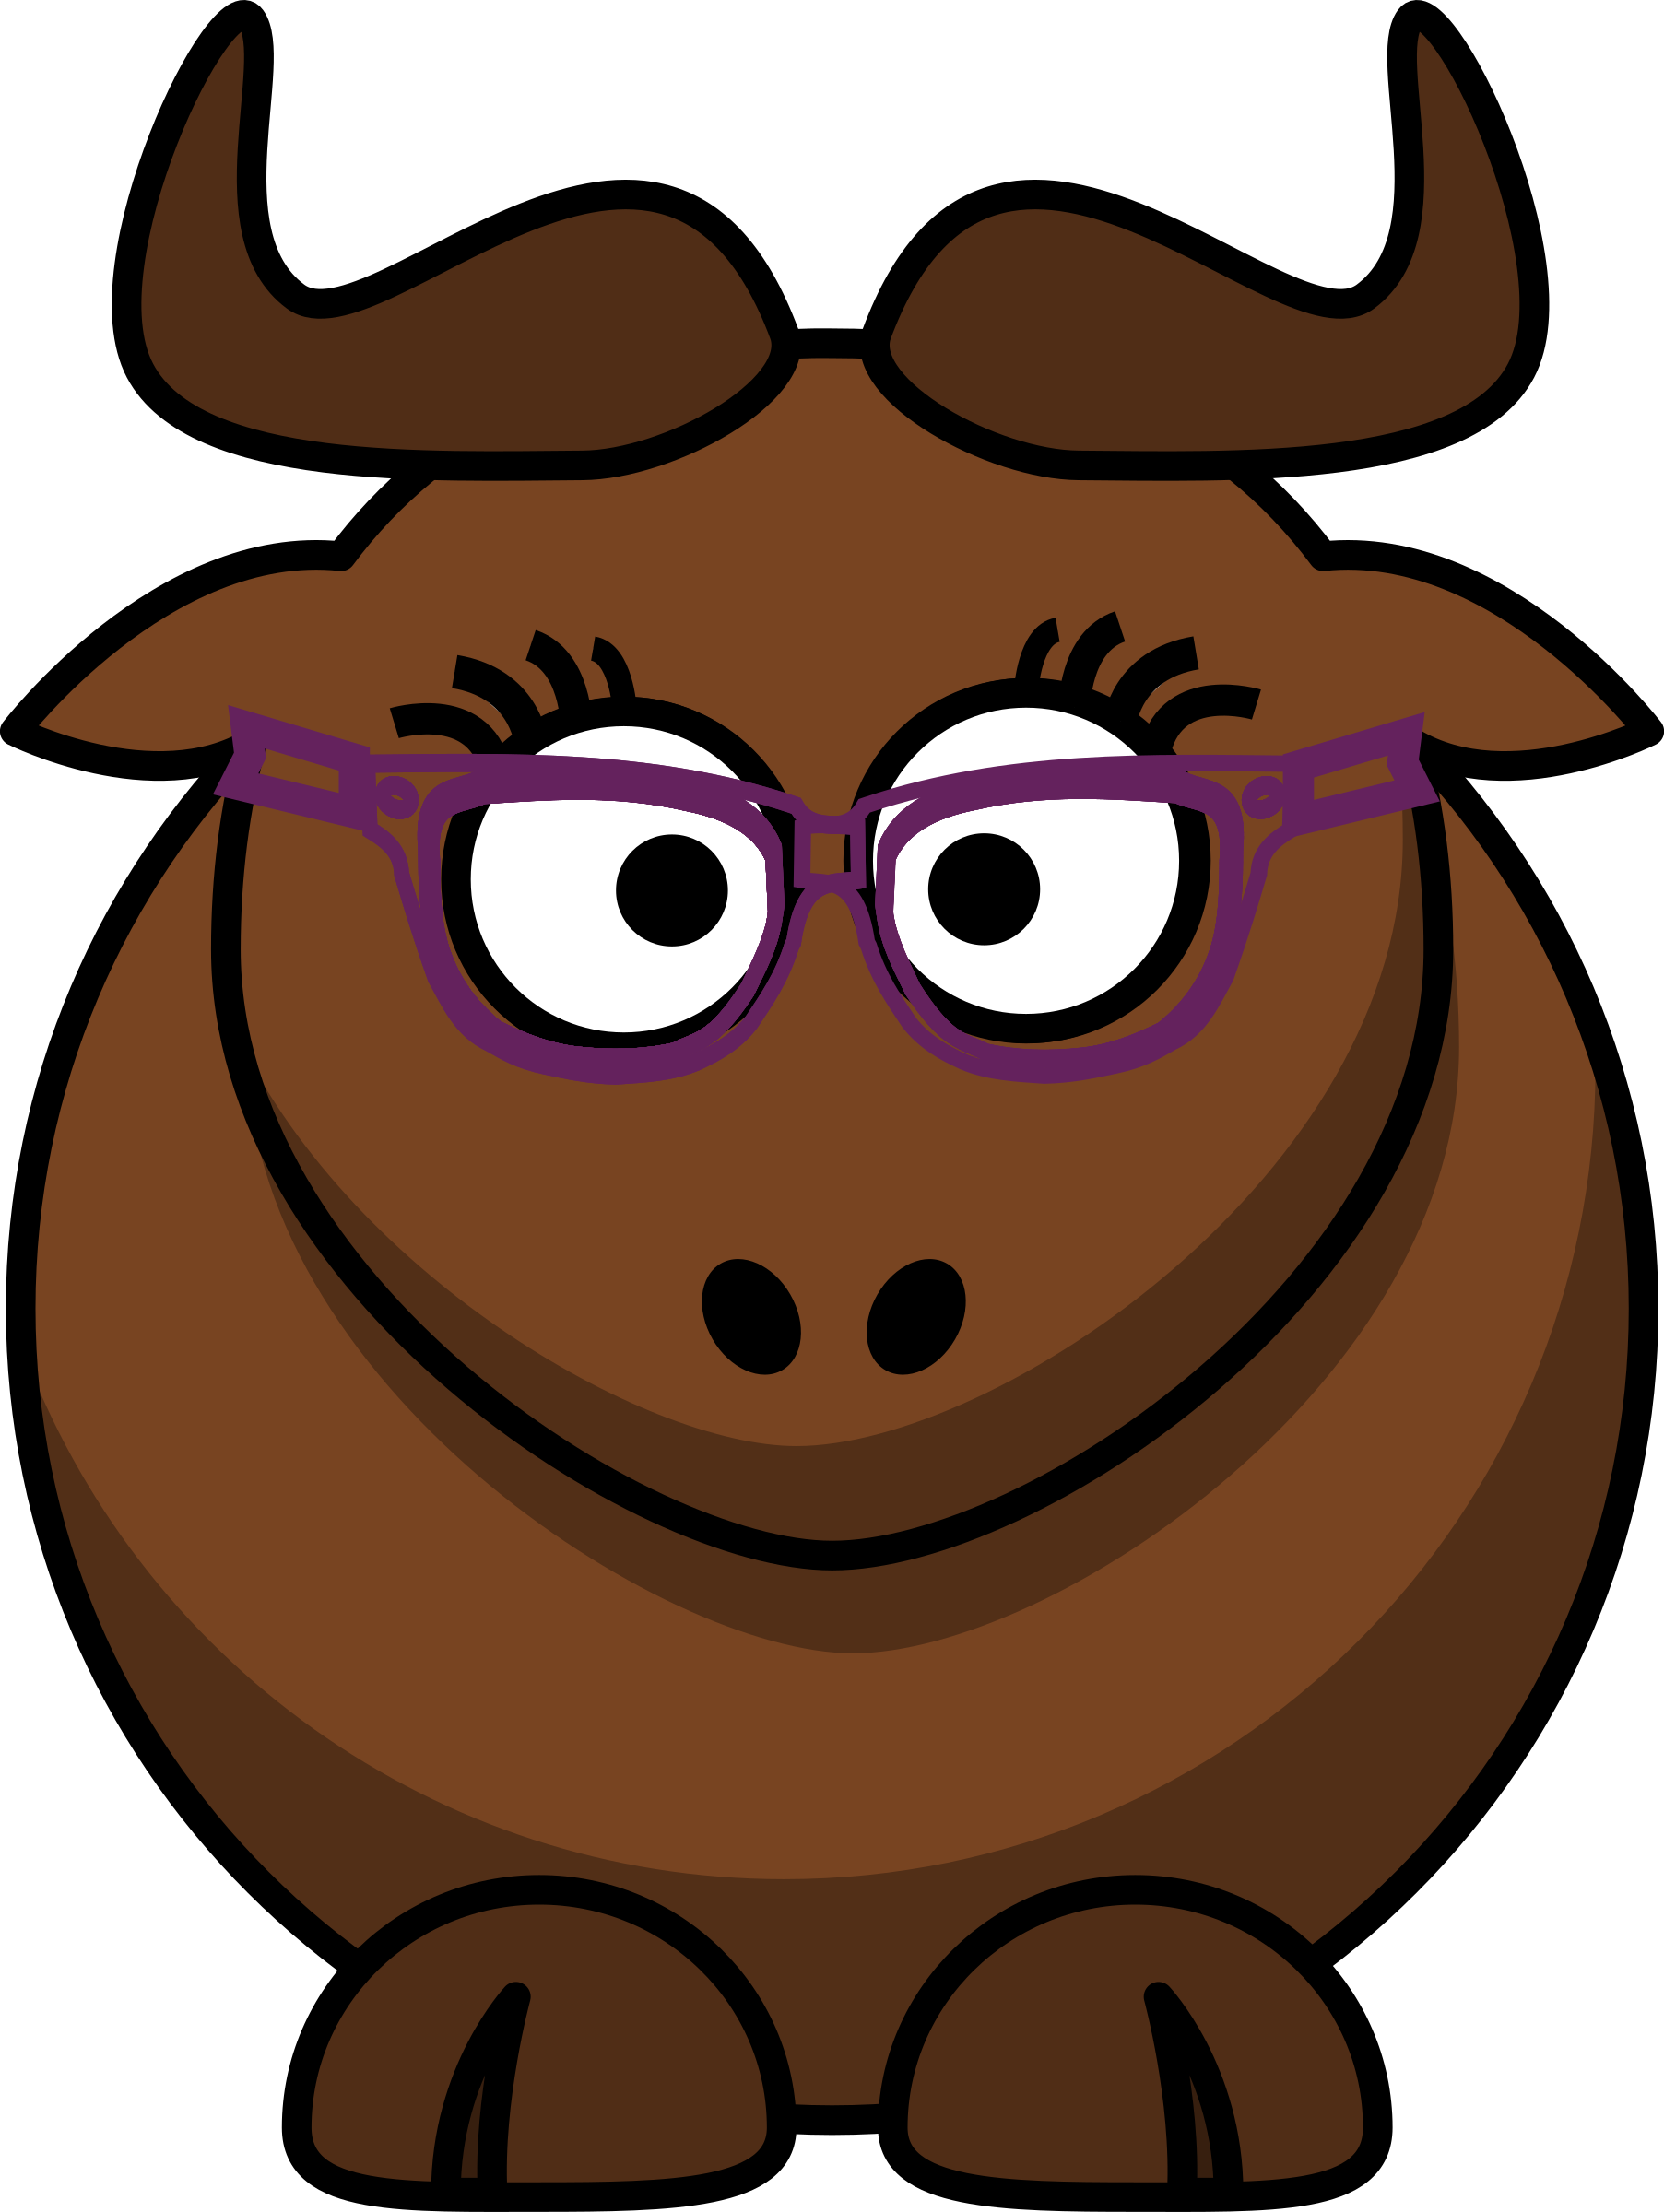 Cartoon Gnu Nerdy/Cute by ephemeralwaves